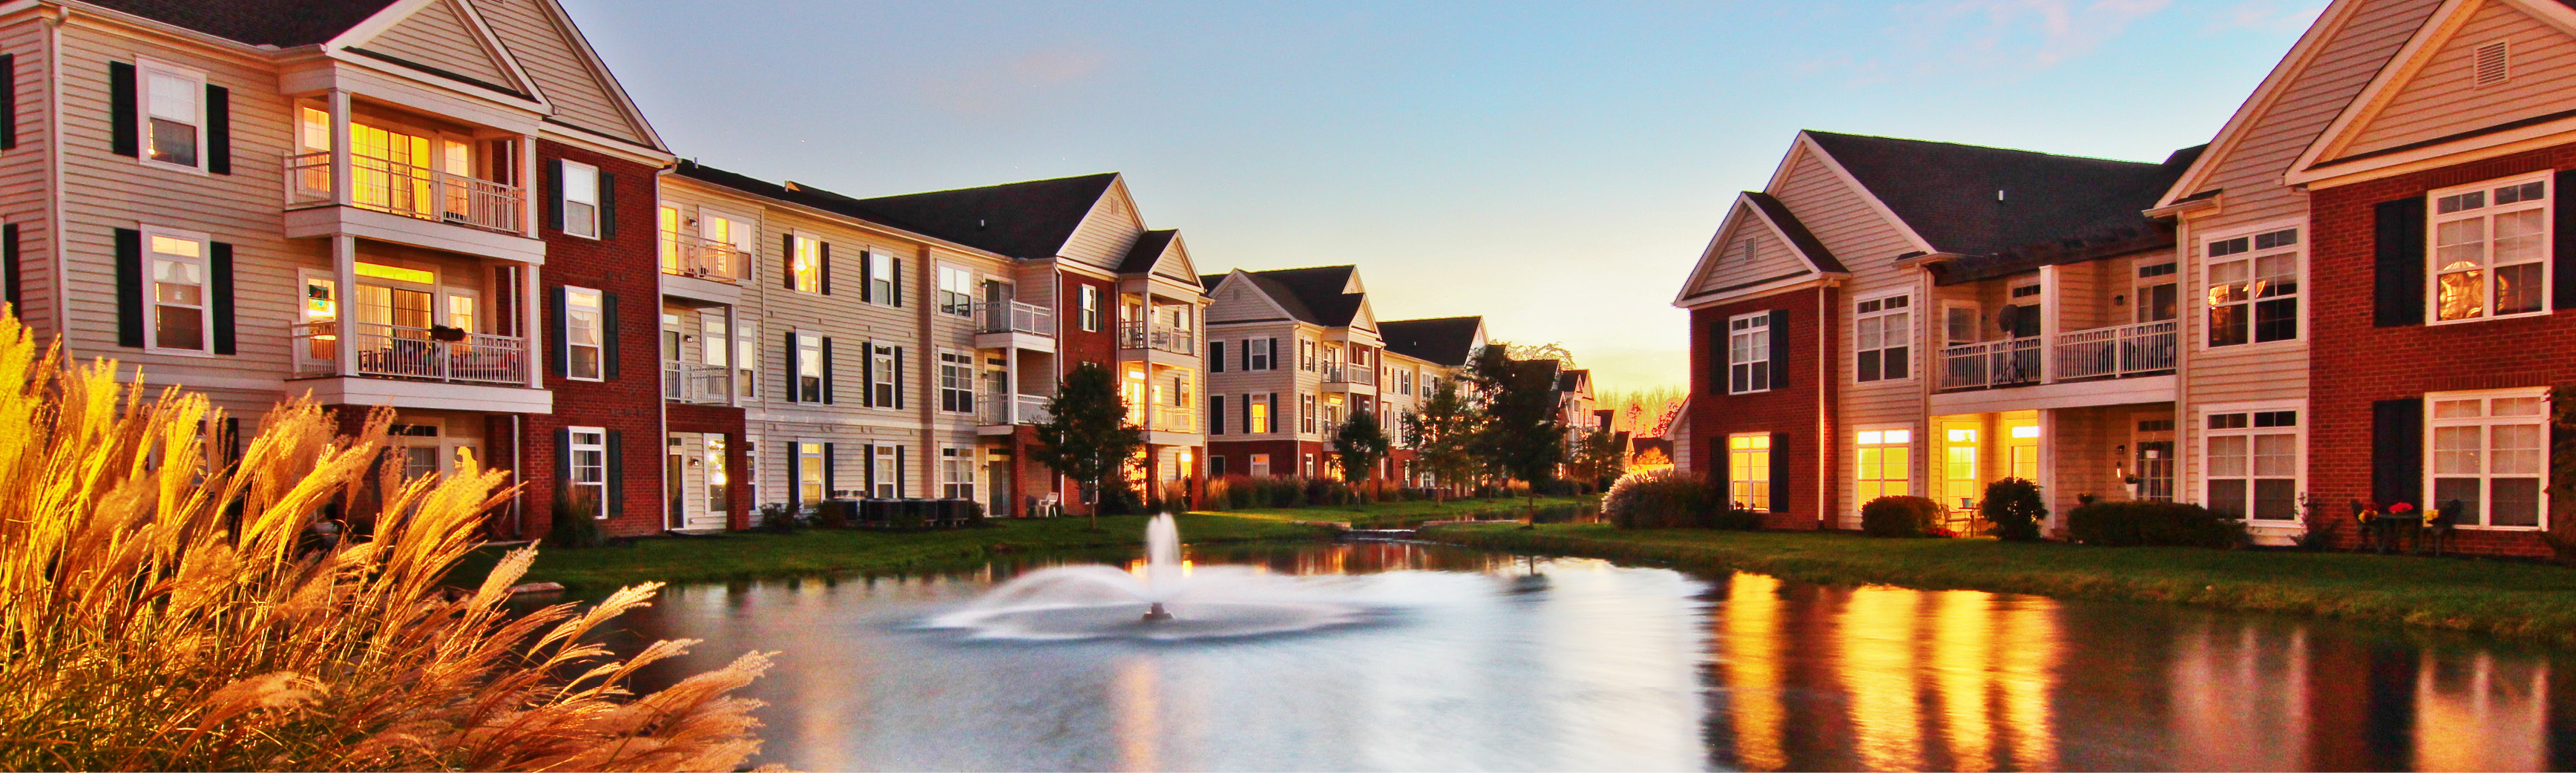 Searching for Apartments in Dublin Ohio Choose Edwards